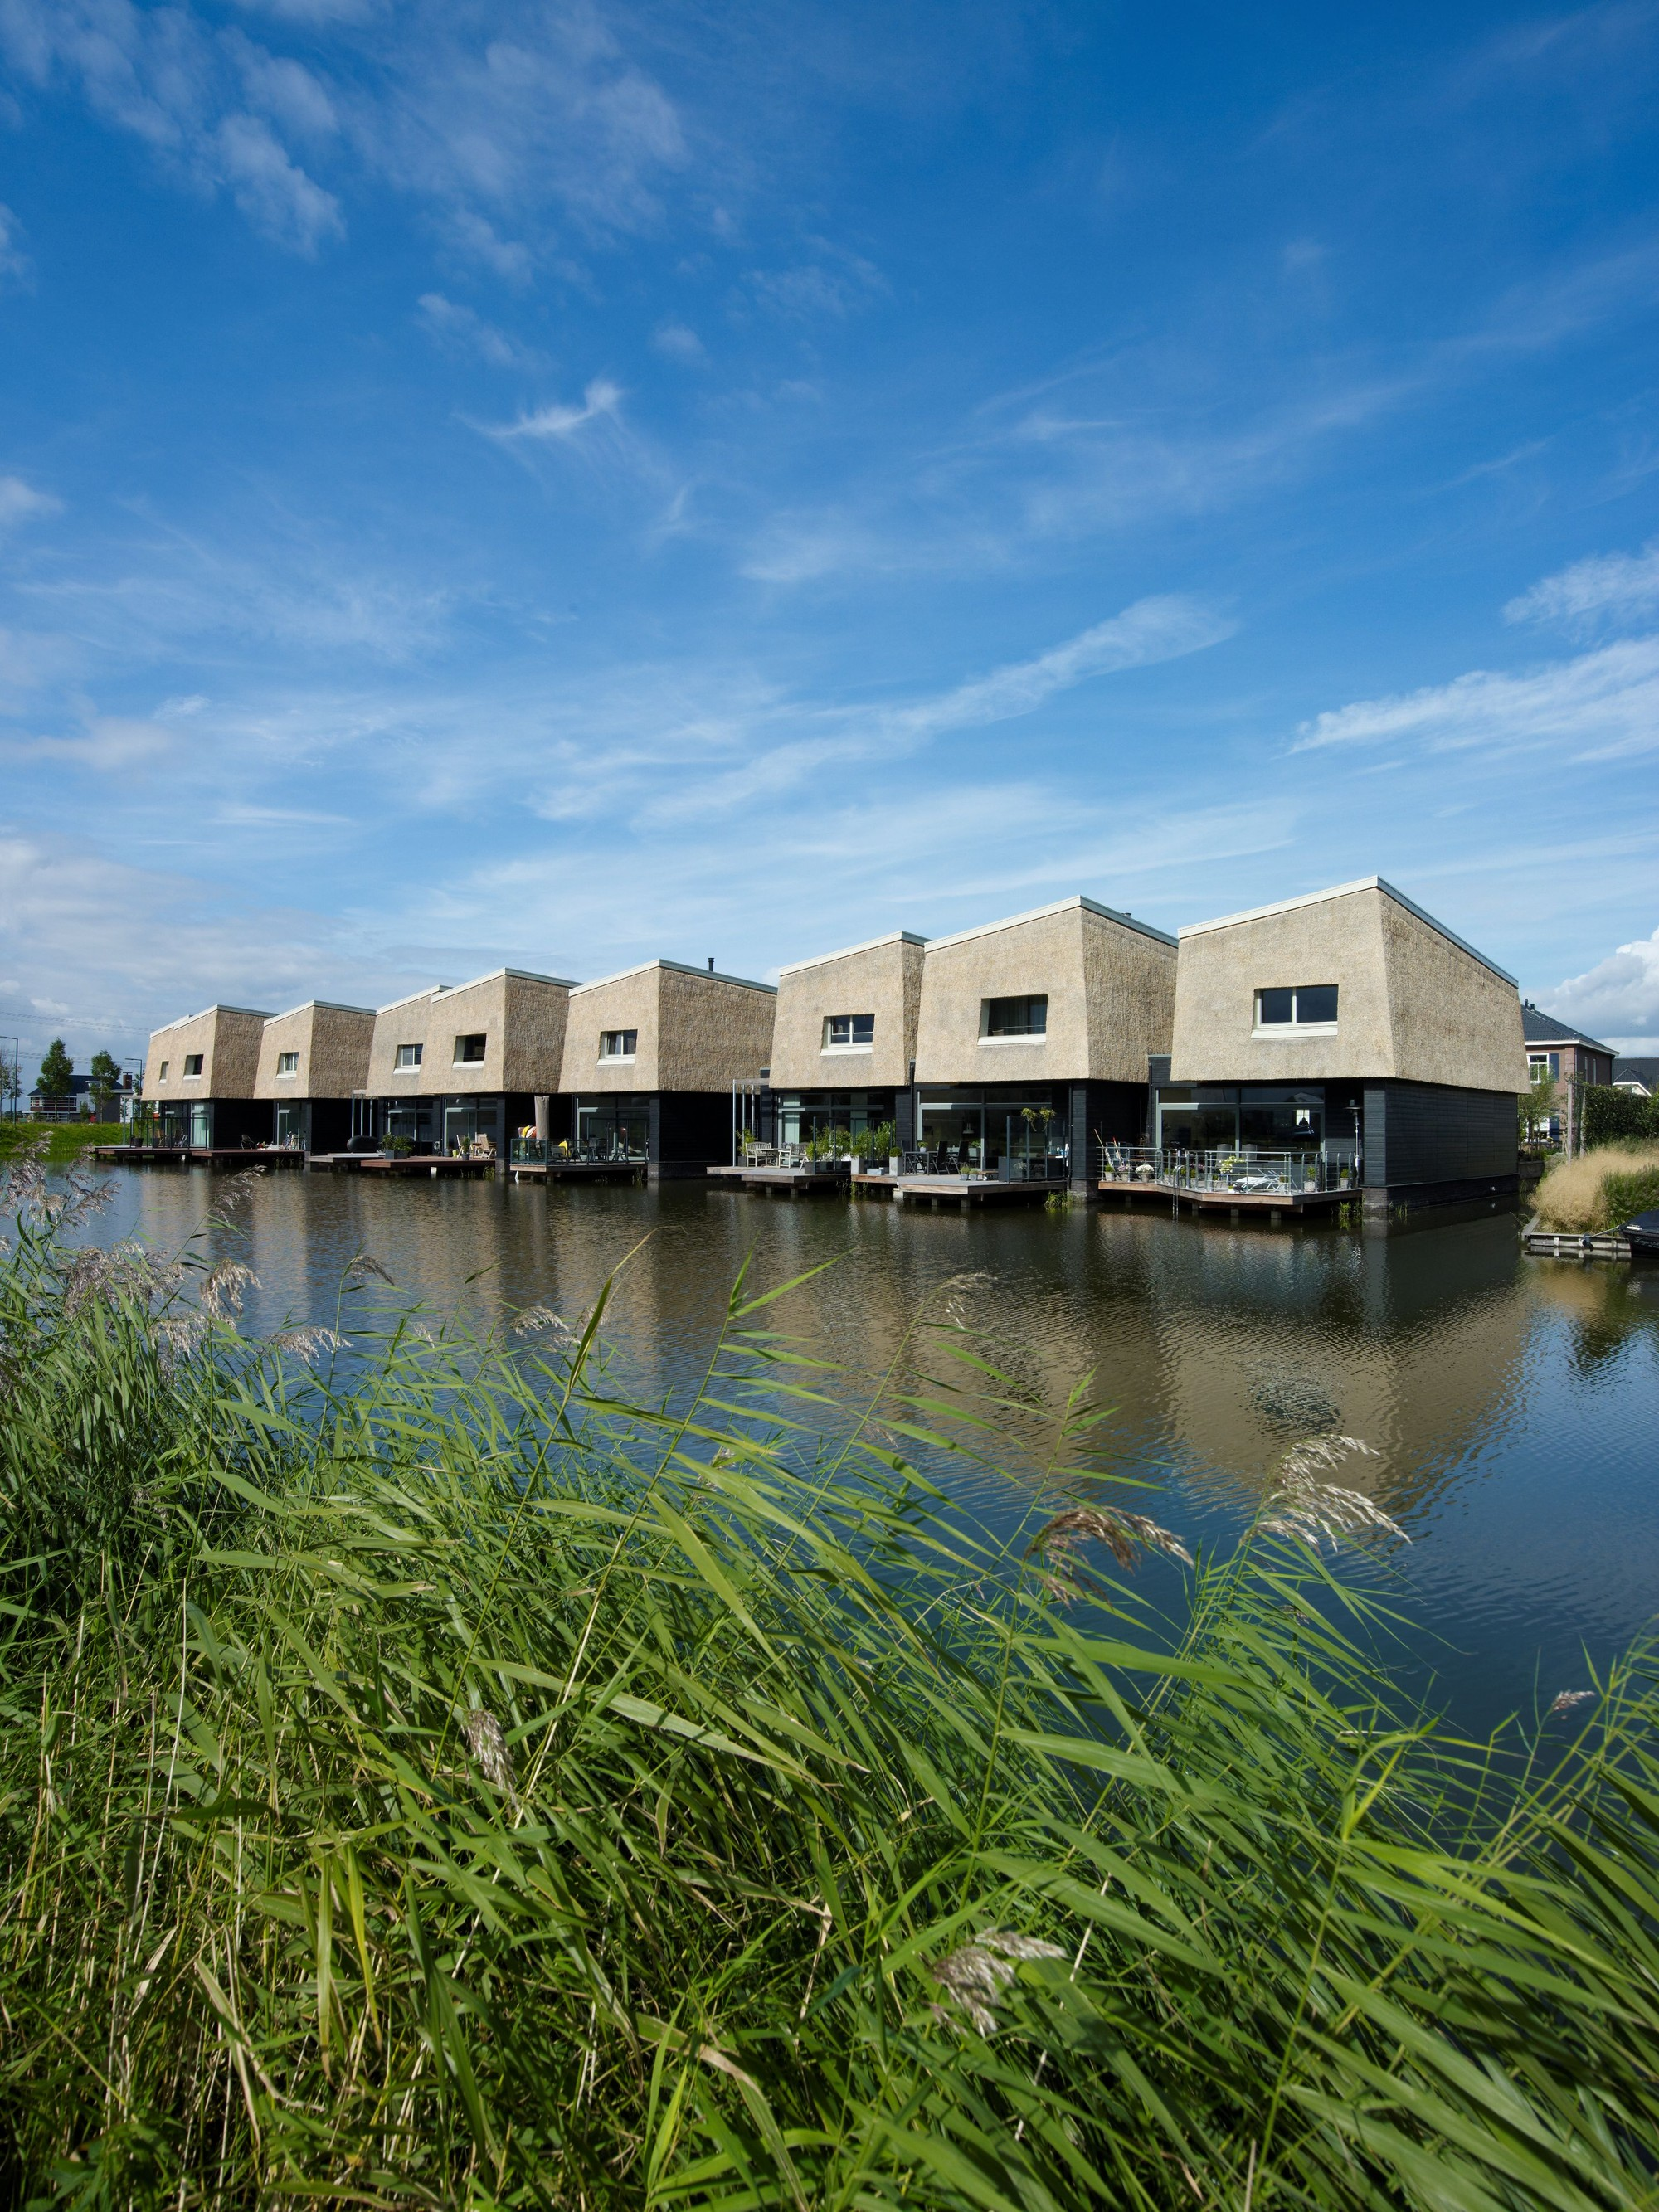 9 Houses on the Water /